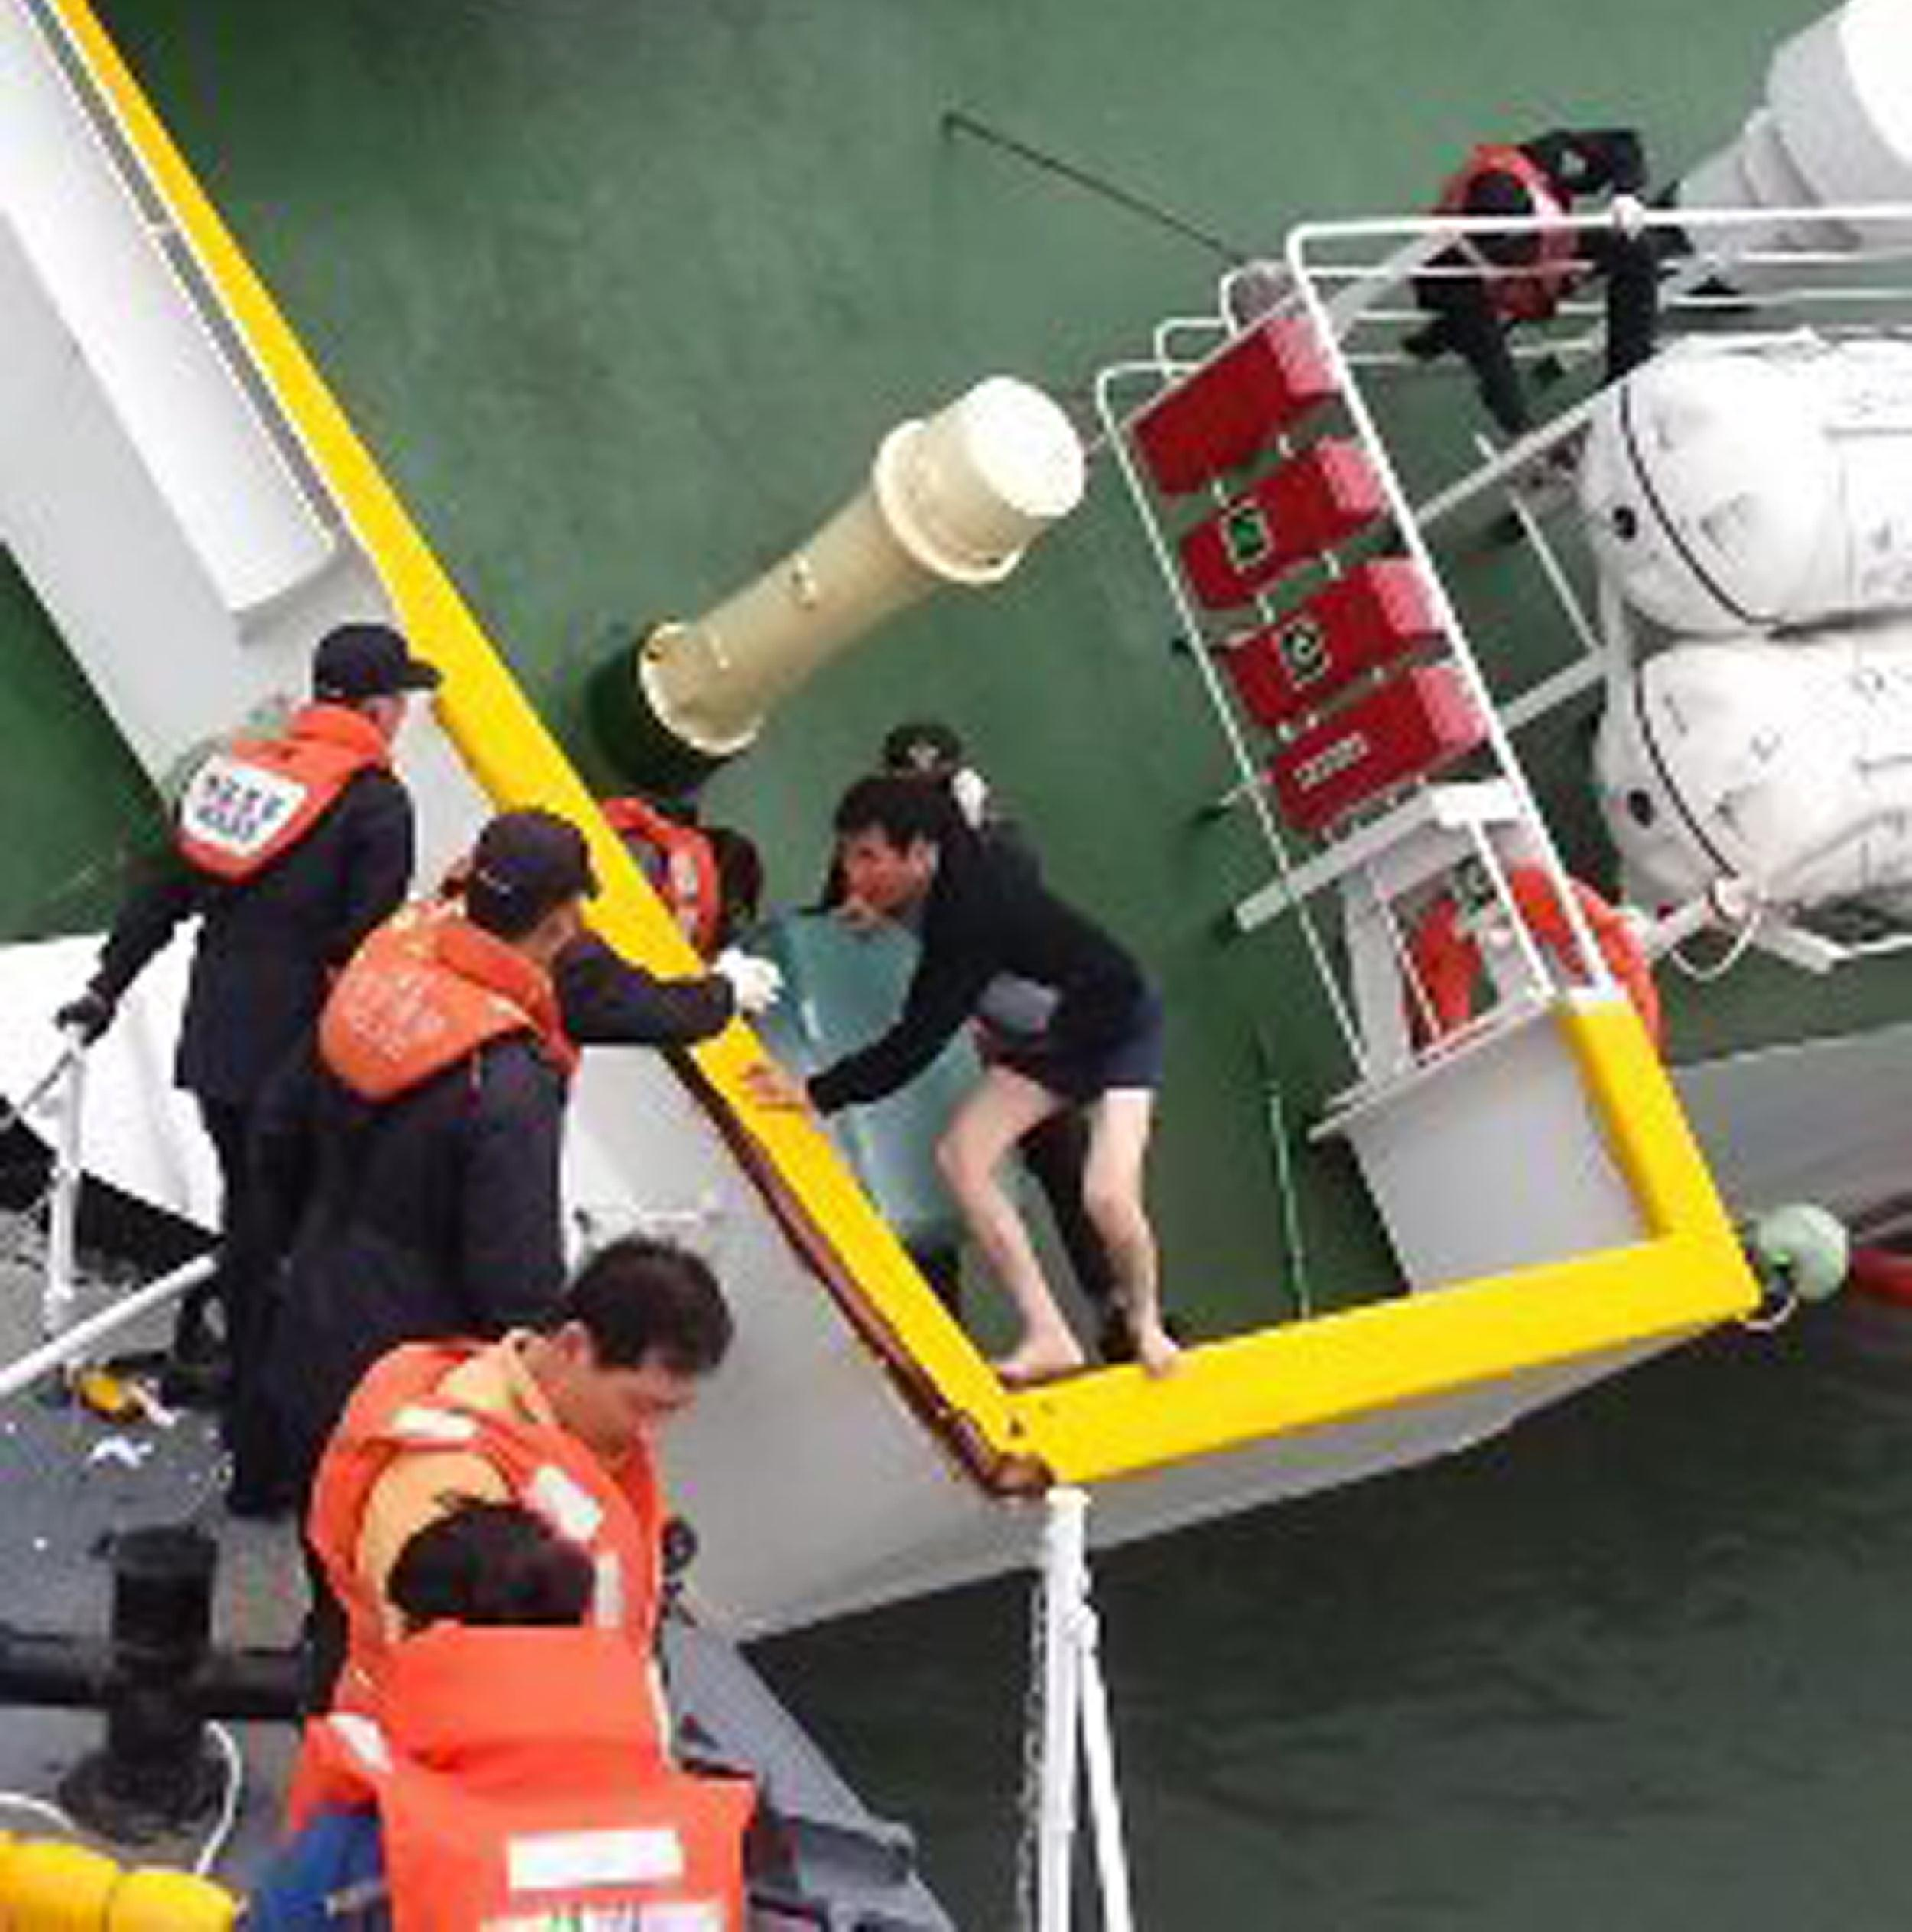 Image: Lee Joon-seok, the captain of the Sewol, fleeing from the sinking ferry